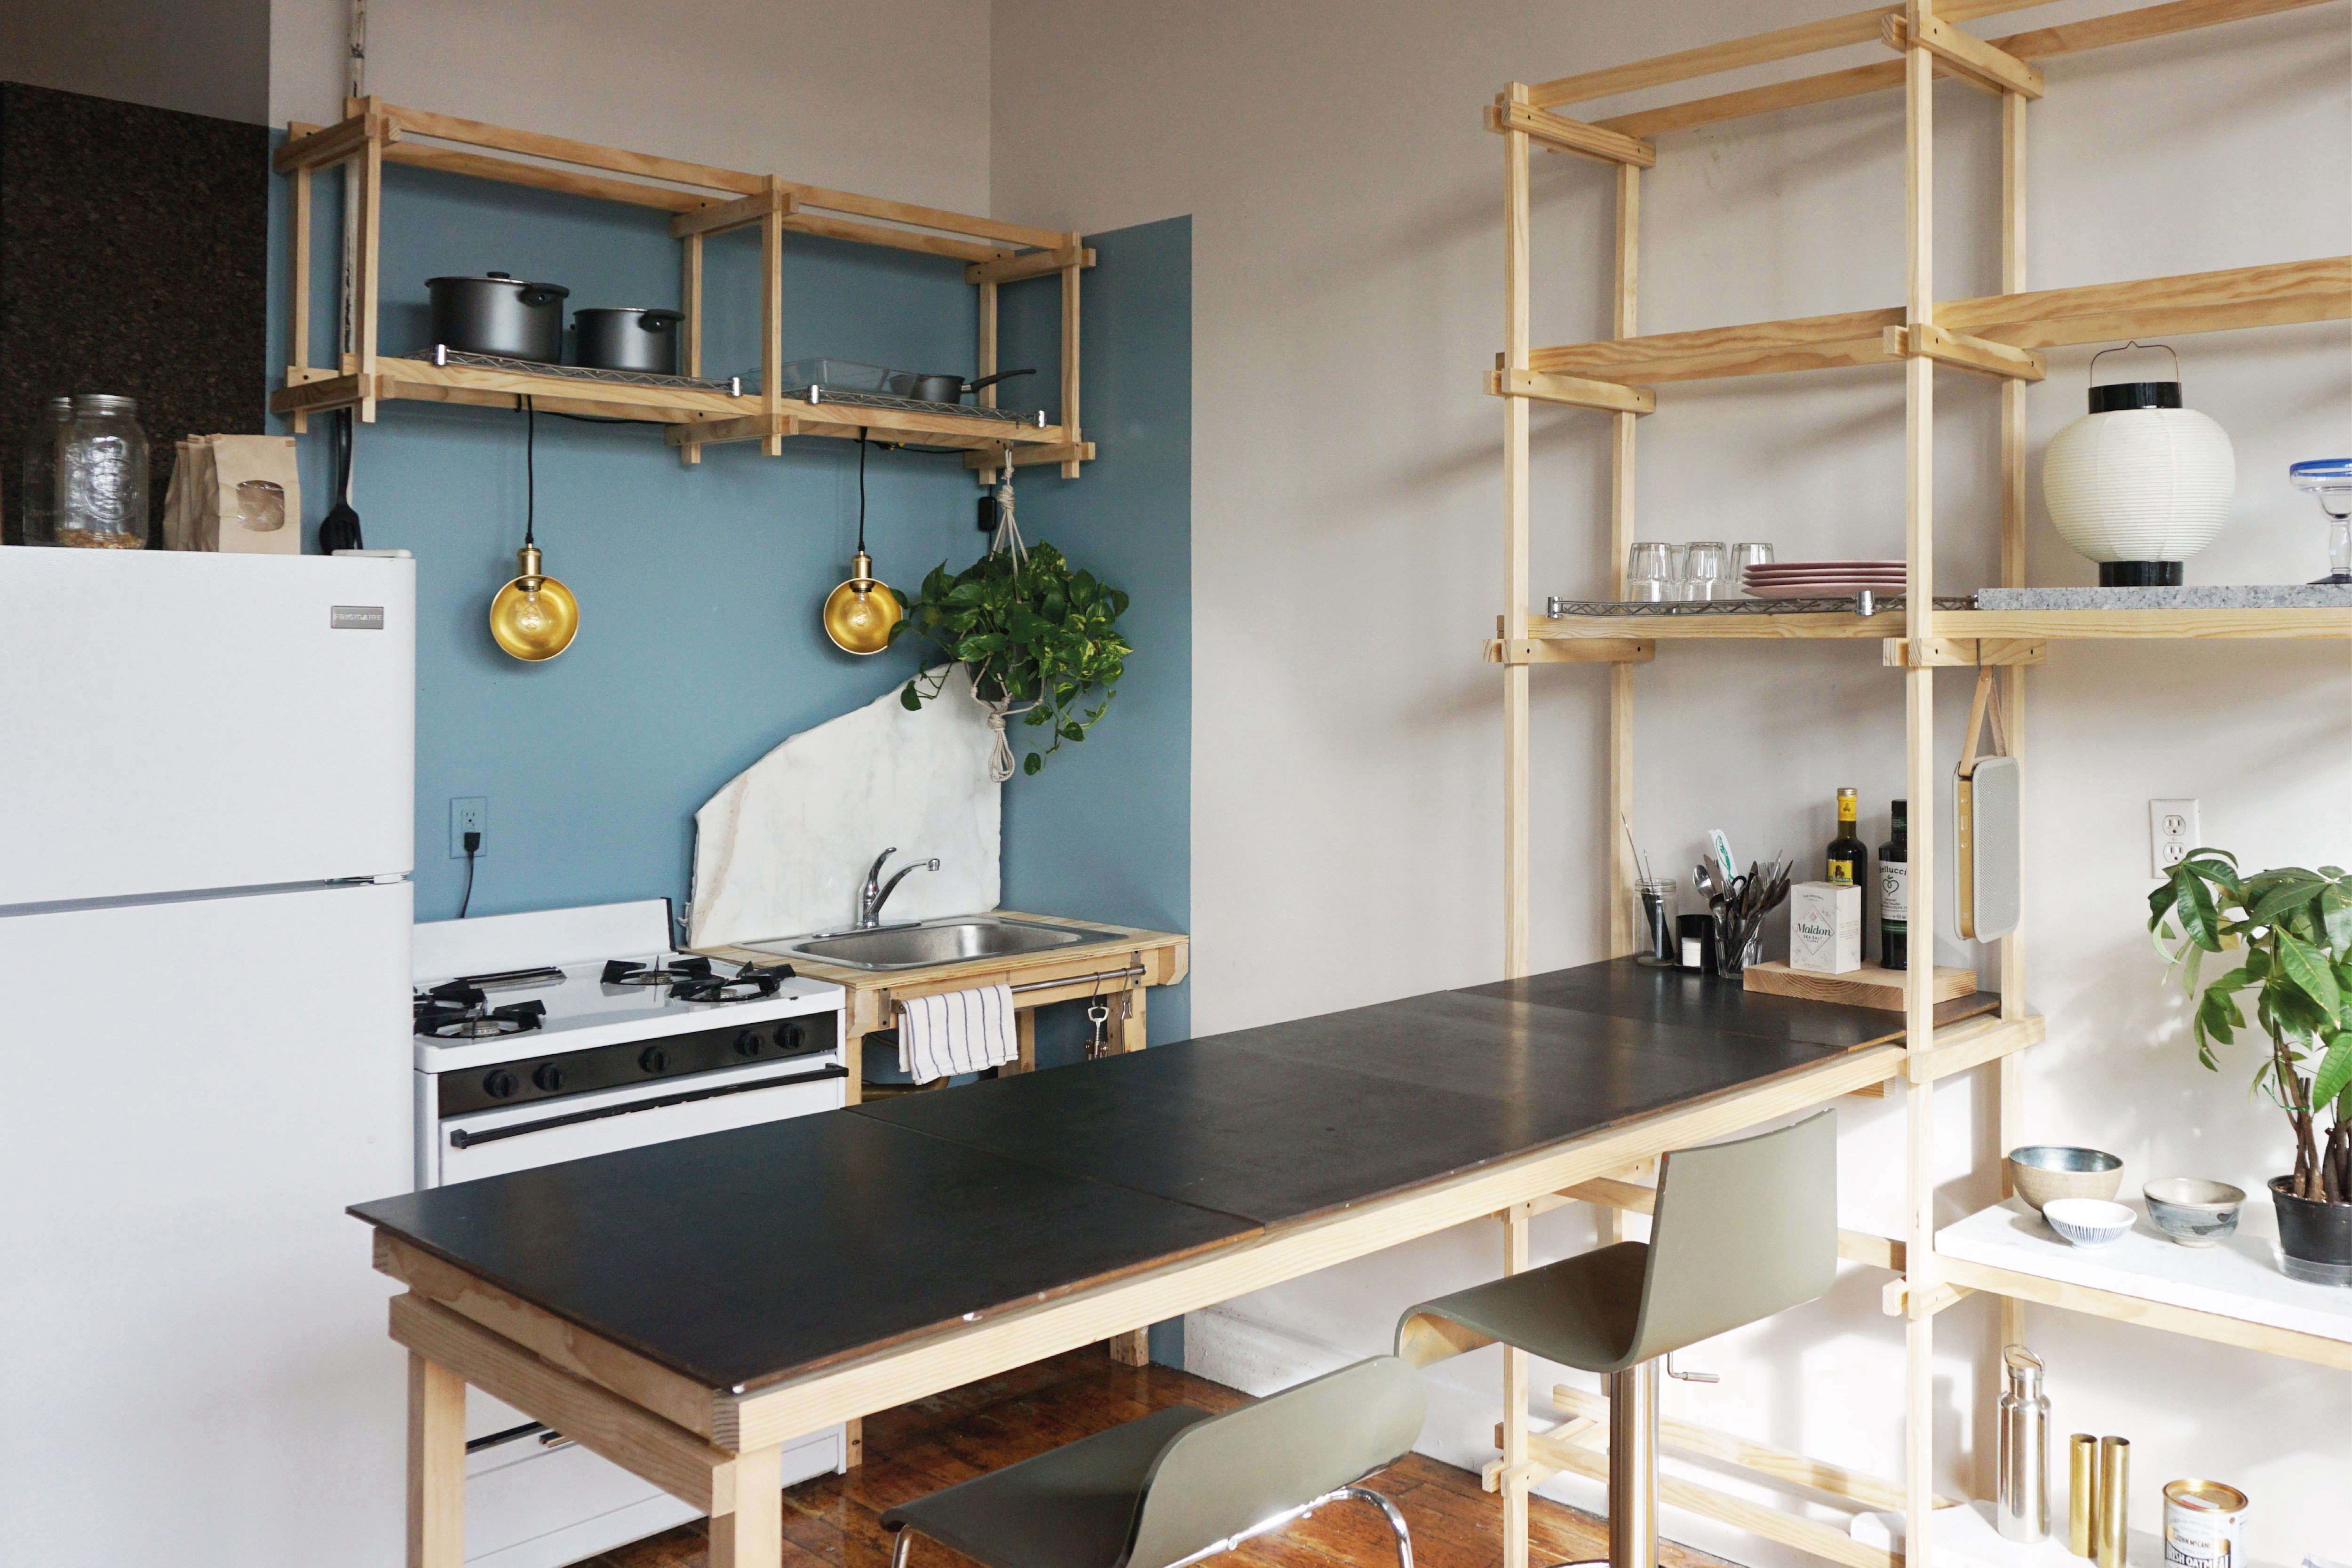 A Two-Week, $1,000, 500-Square-Foot Rental Overhaul by a Design Student in Bushwick, Brooklyn - Remodelista